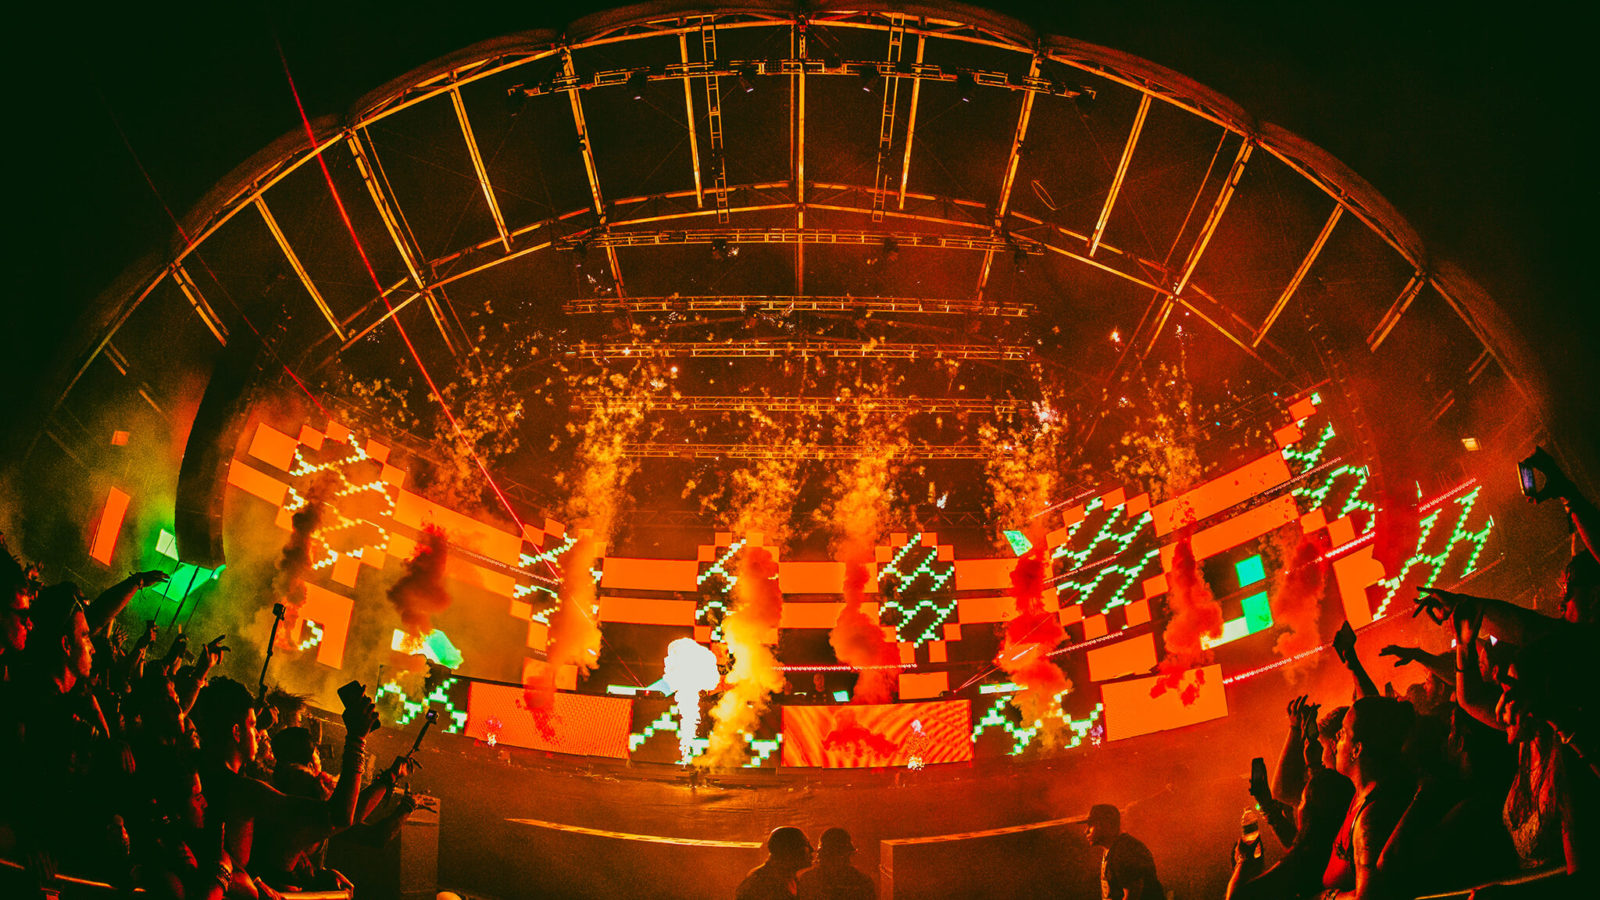 jack u live at sunset music festival